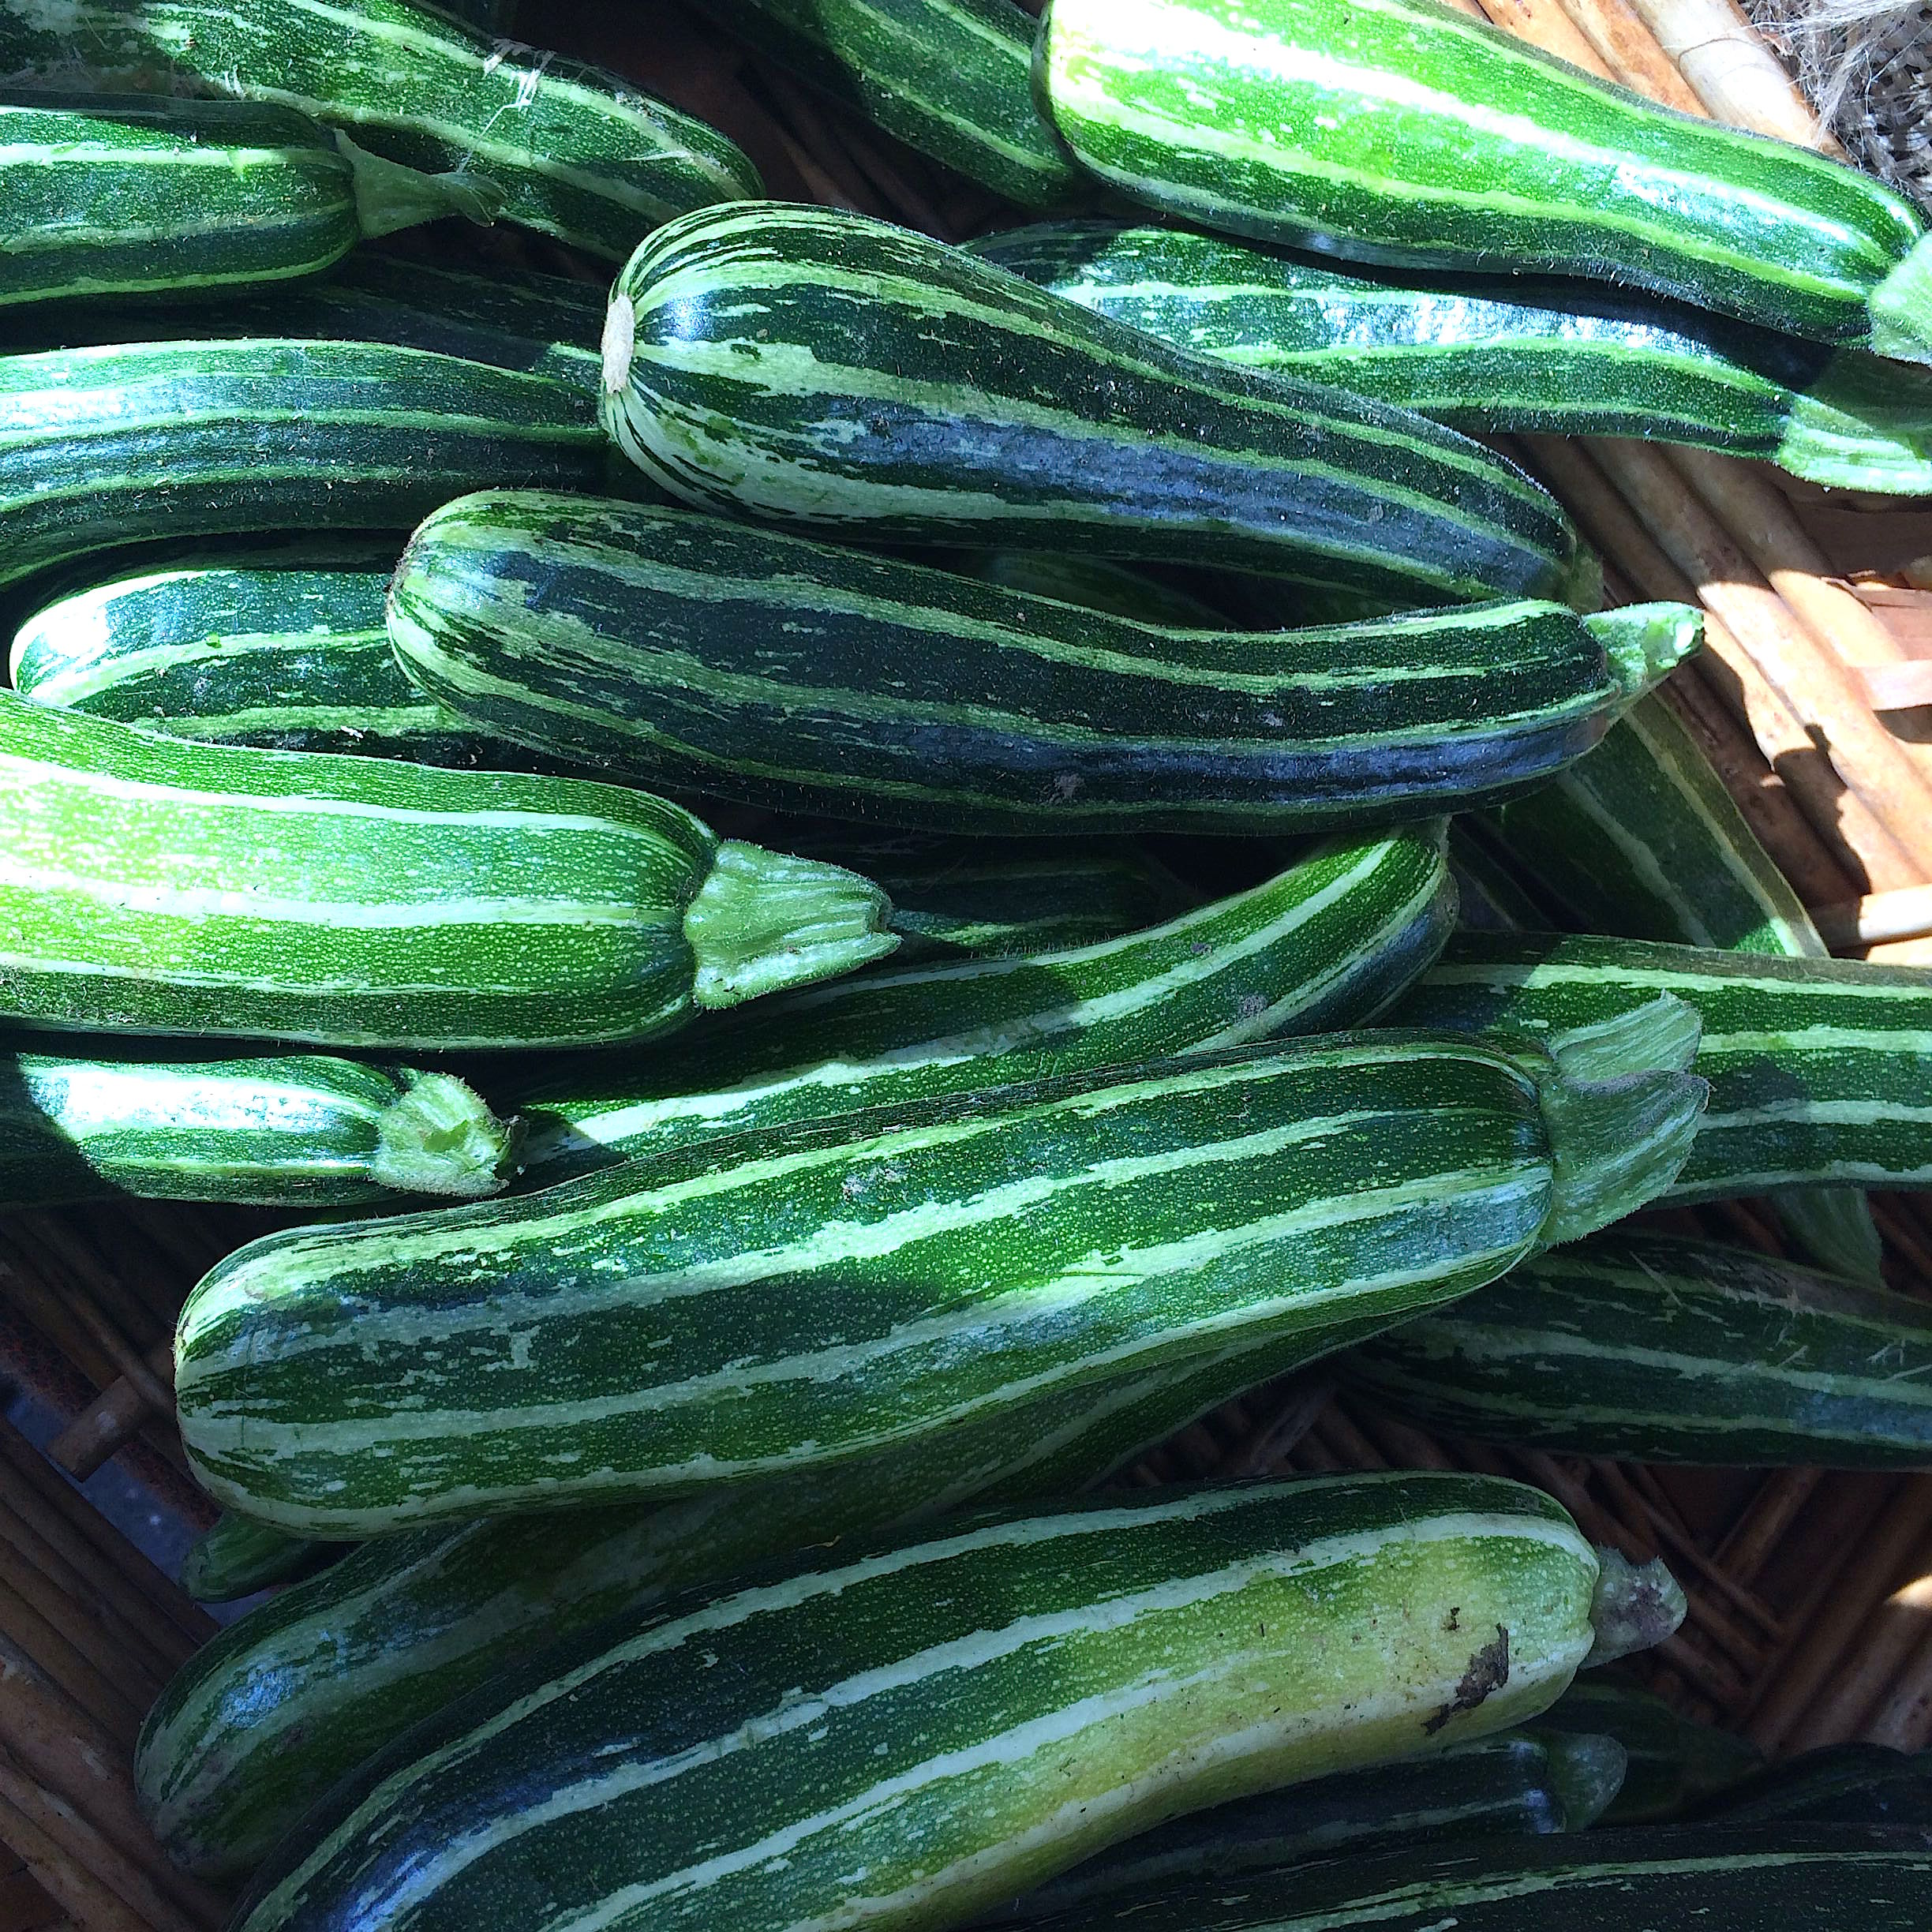 Tiger squashes from Lonely Mountain at CUESA.